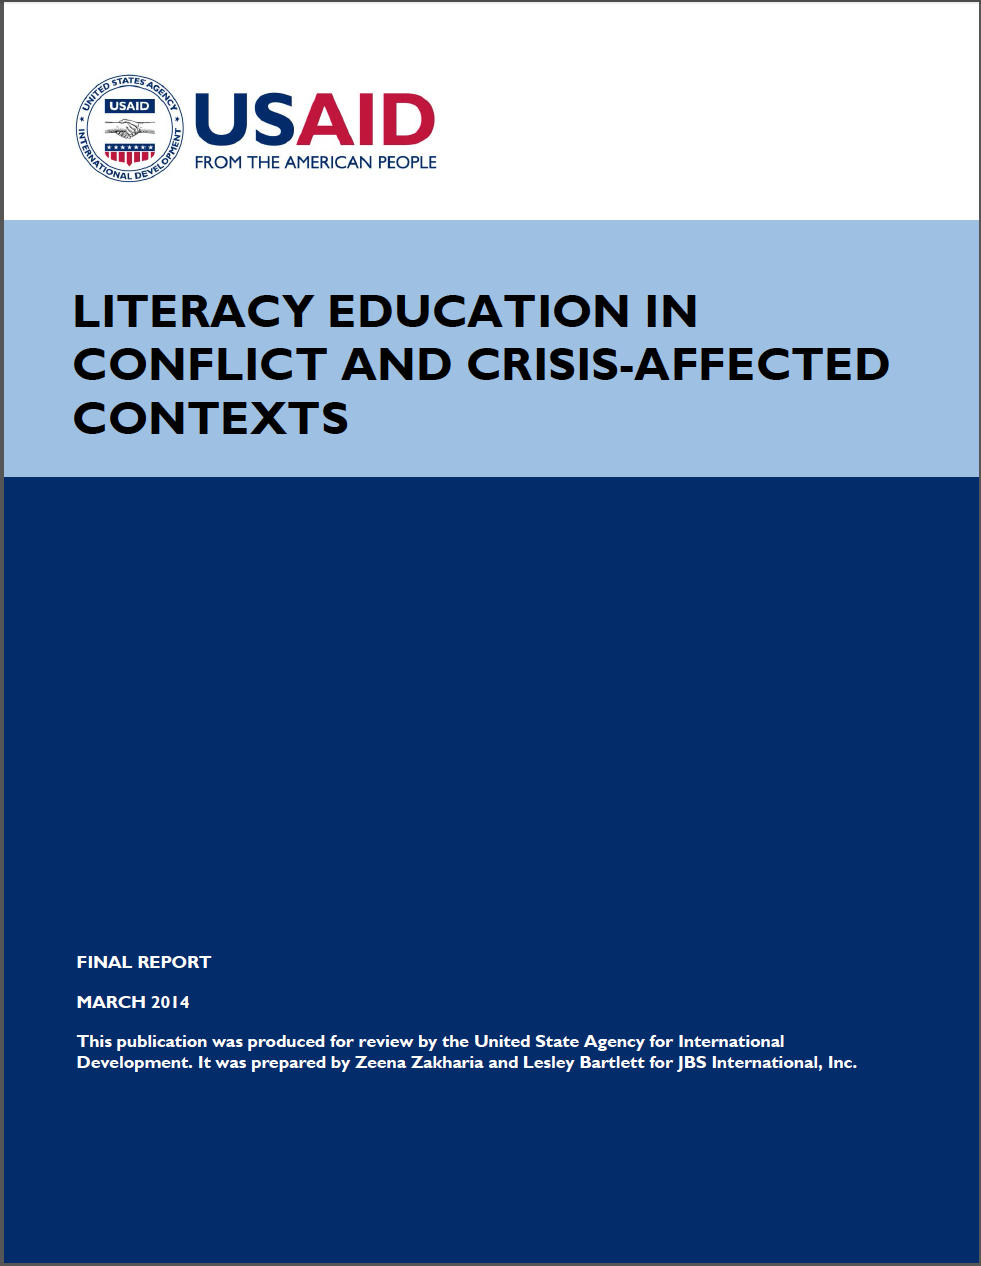 Literacy Education Crisis & Conflict